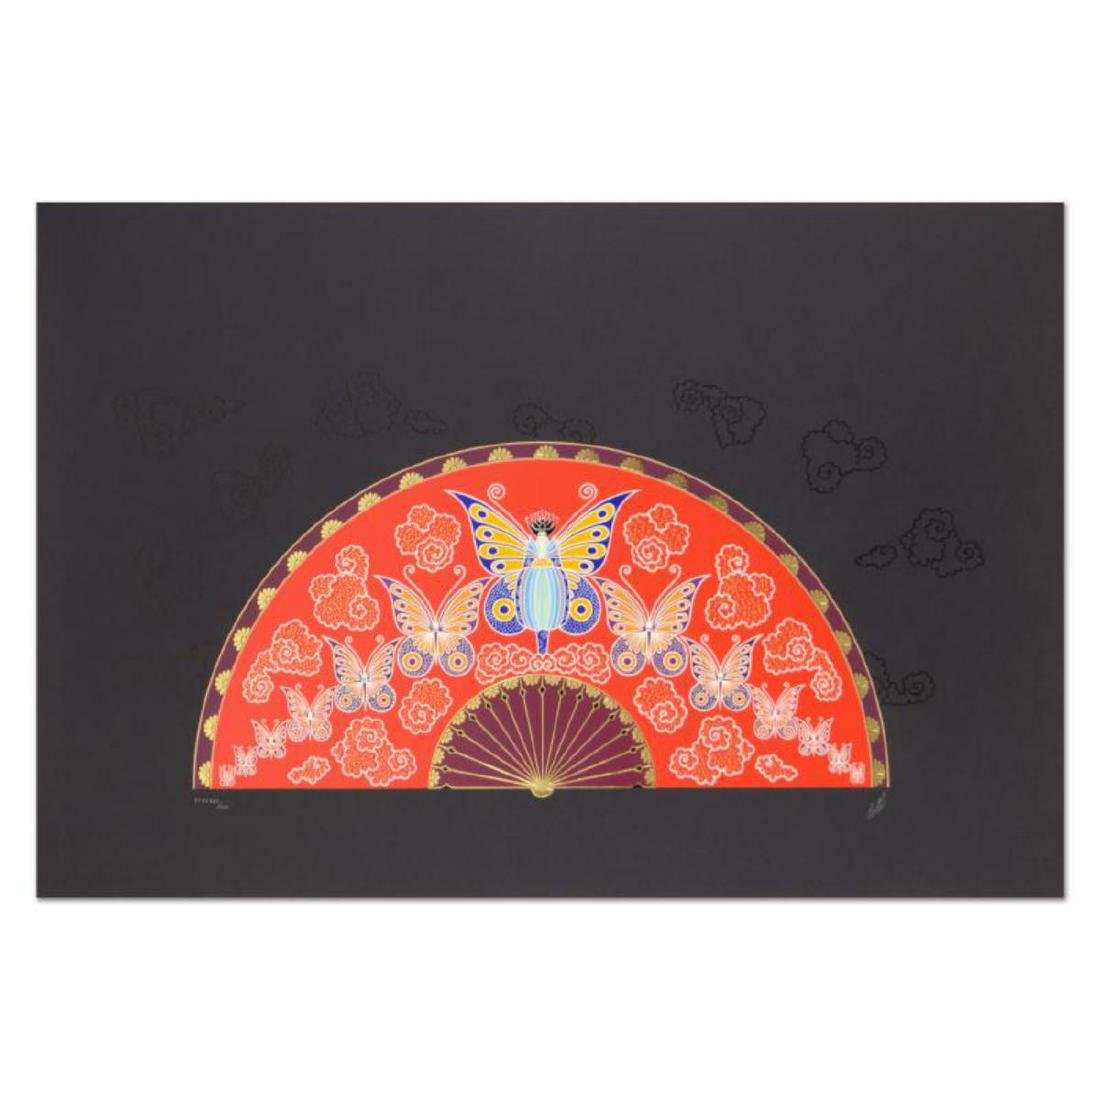 "Erte (1892-1990), ""Madame Butterfly"" Limited Edition"